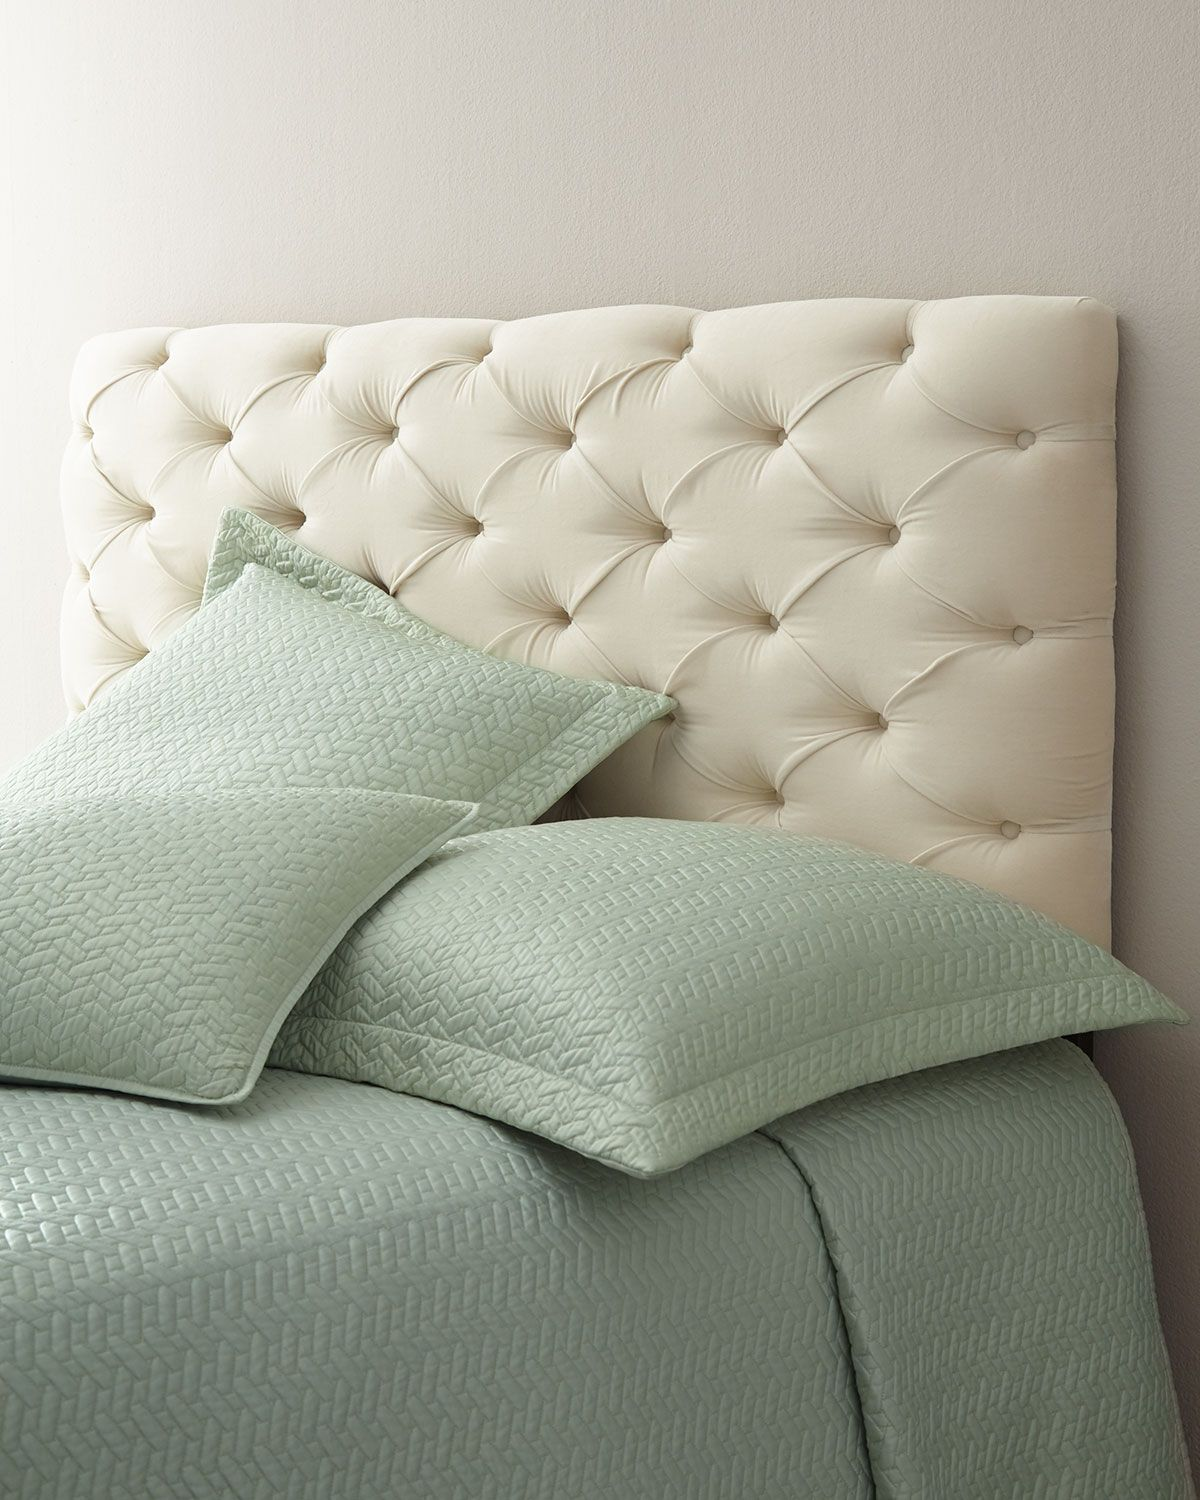 Low Leather Grid-Tufted Headboard   Simple bed frame, Tufted ...